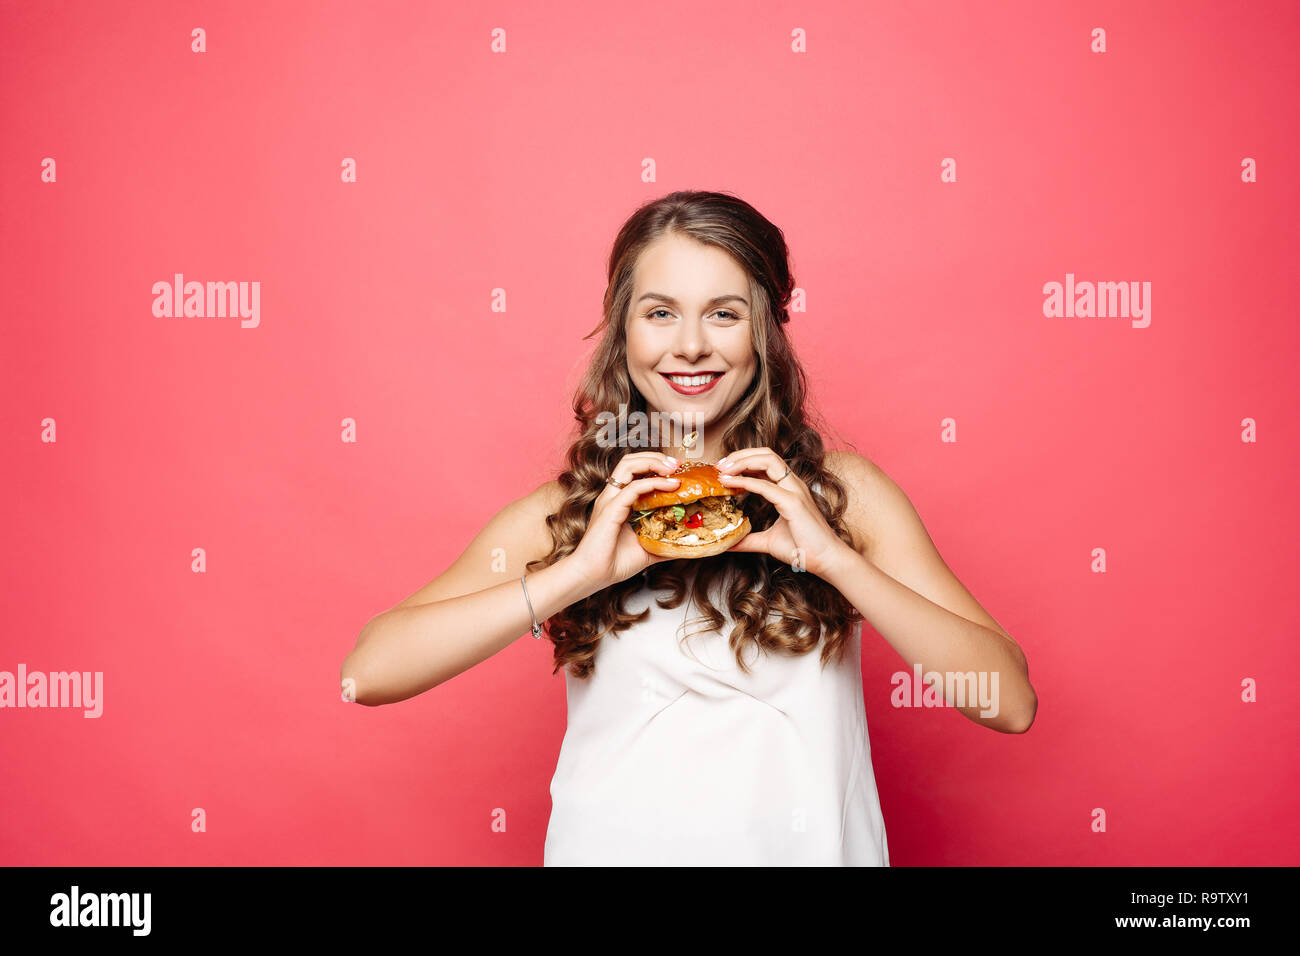 Close up of hungry girl with opened mouth, holding and eating big hamburger. Pretty woman with curly hairstyle and red lips eating tasty cheeseburger  Stock Photo